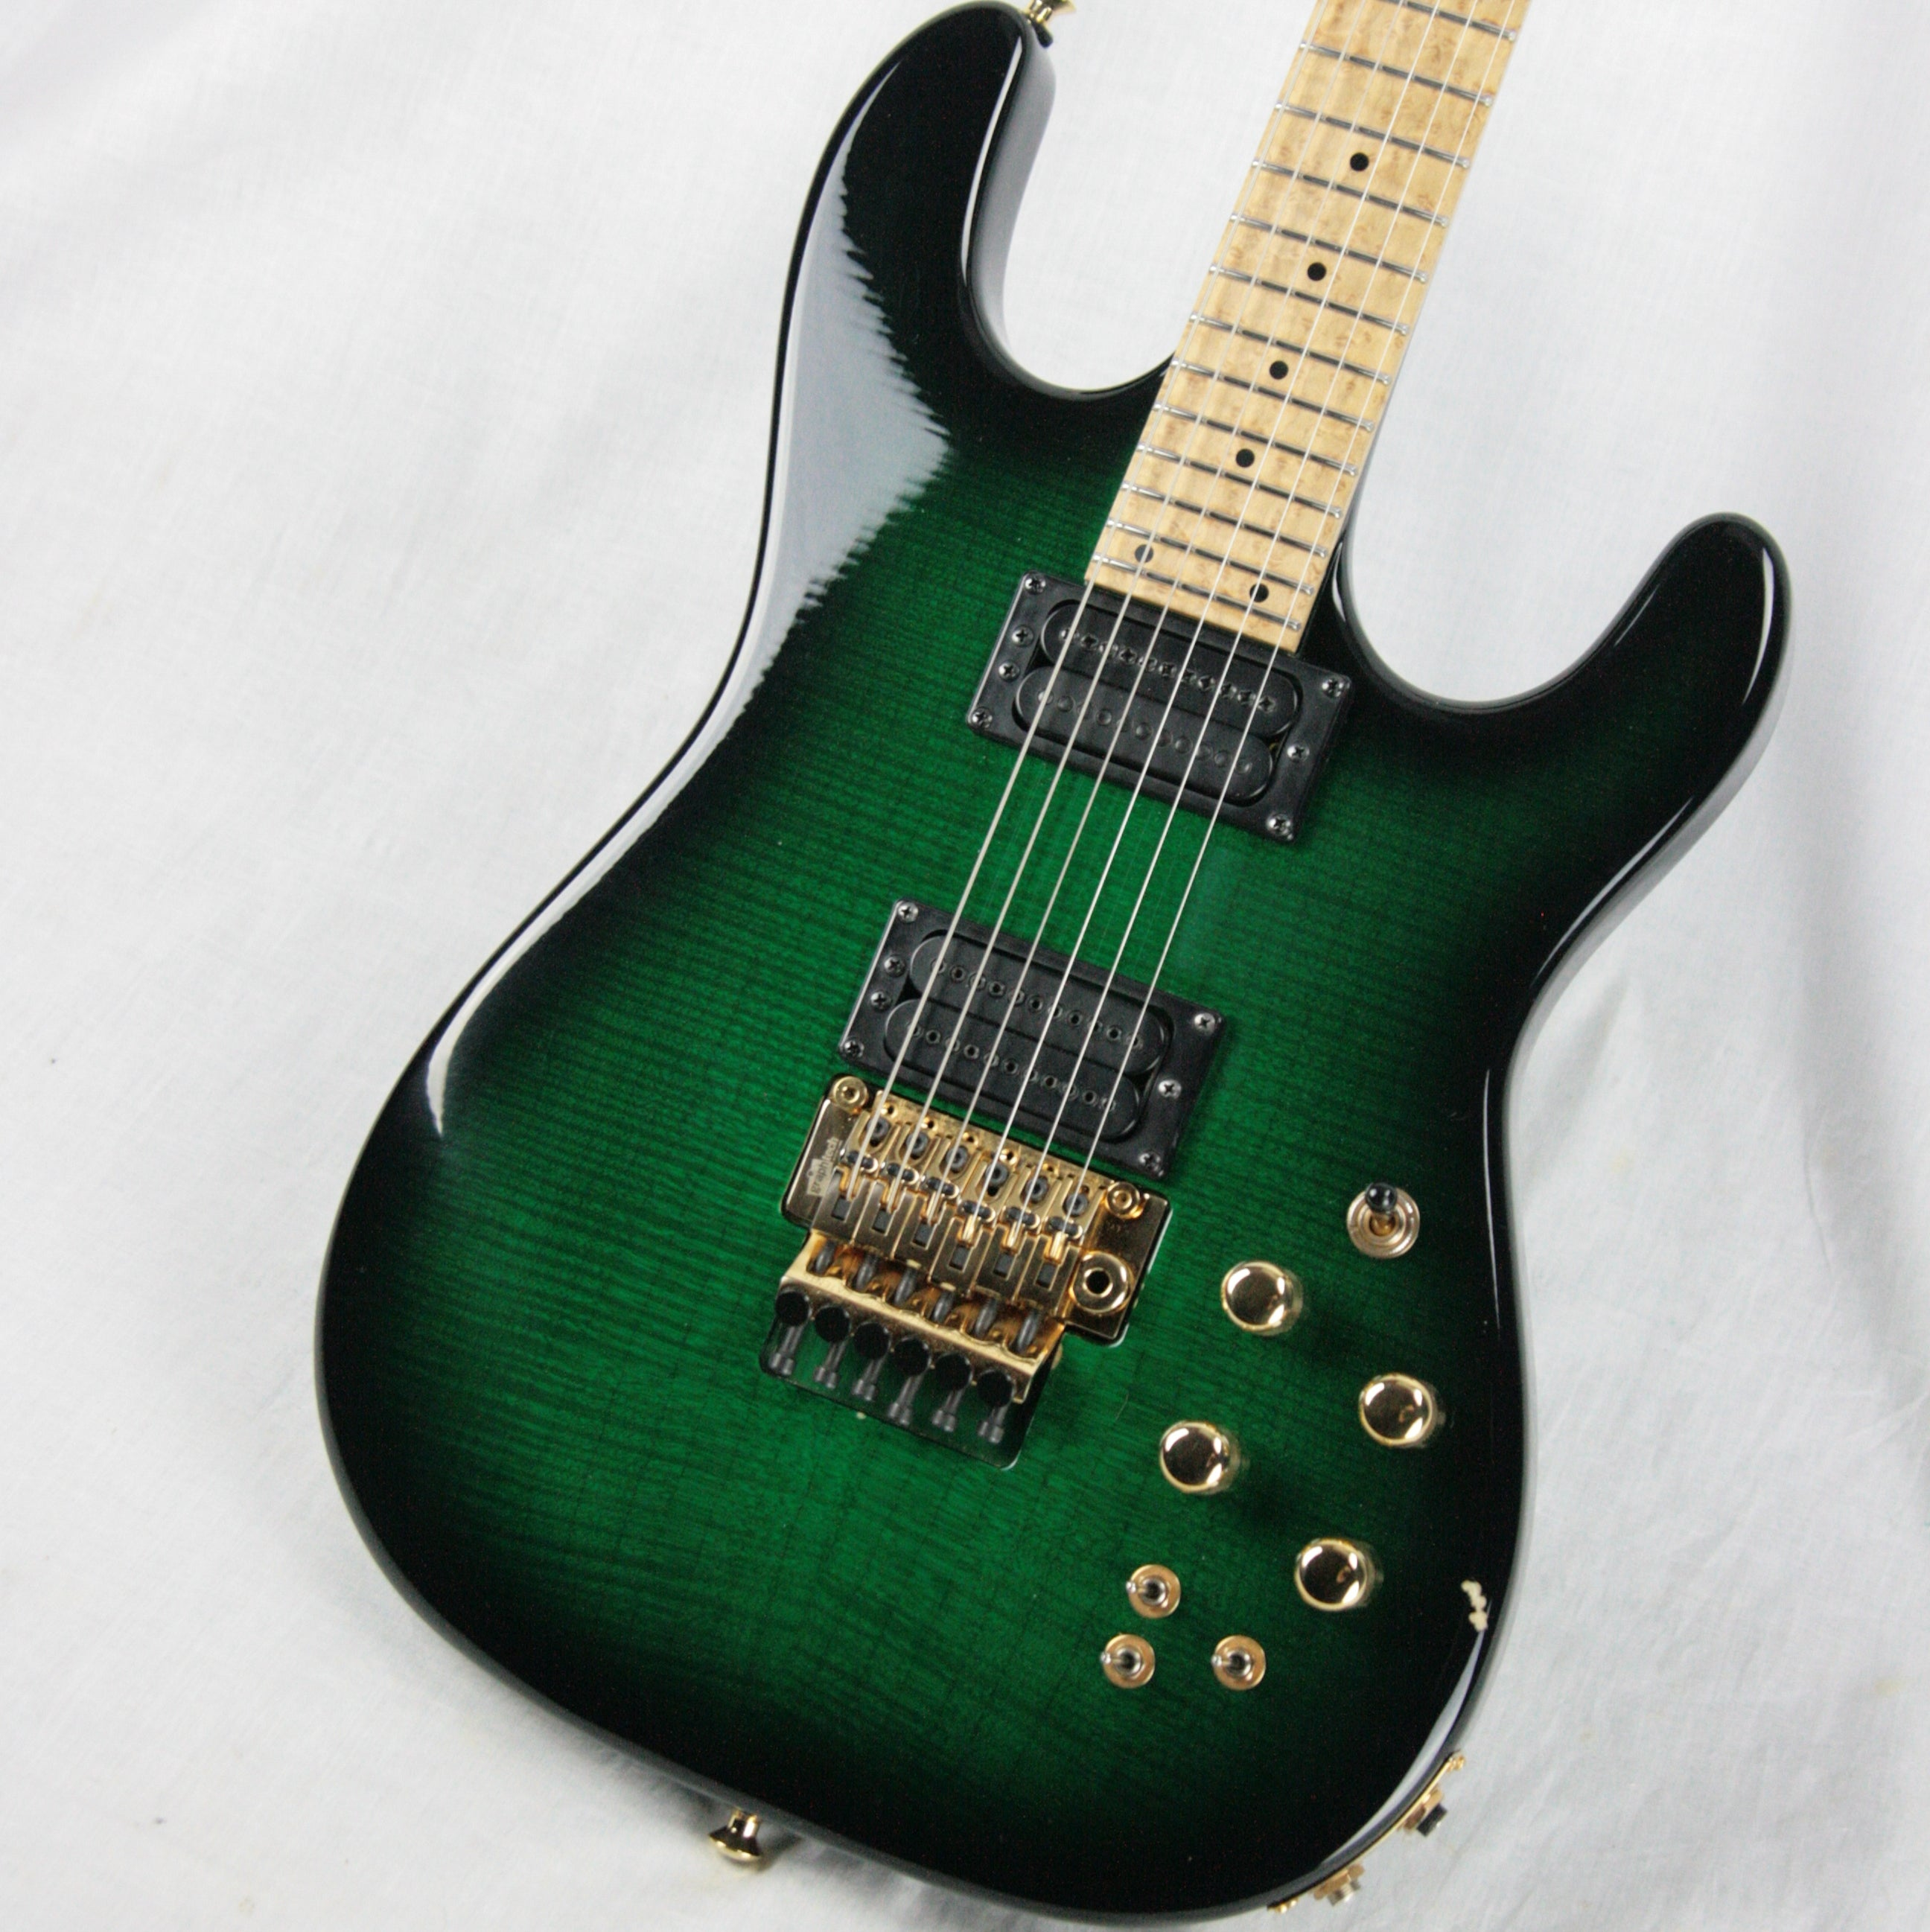 c. 2003 Carvin USA ST-300 Green Flametop w/ Graphtech Ghost Floyd Rose! Piezo Electronics!